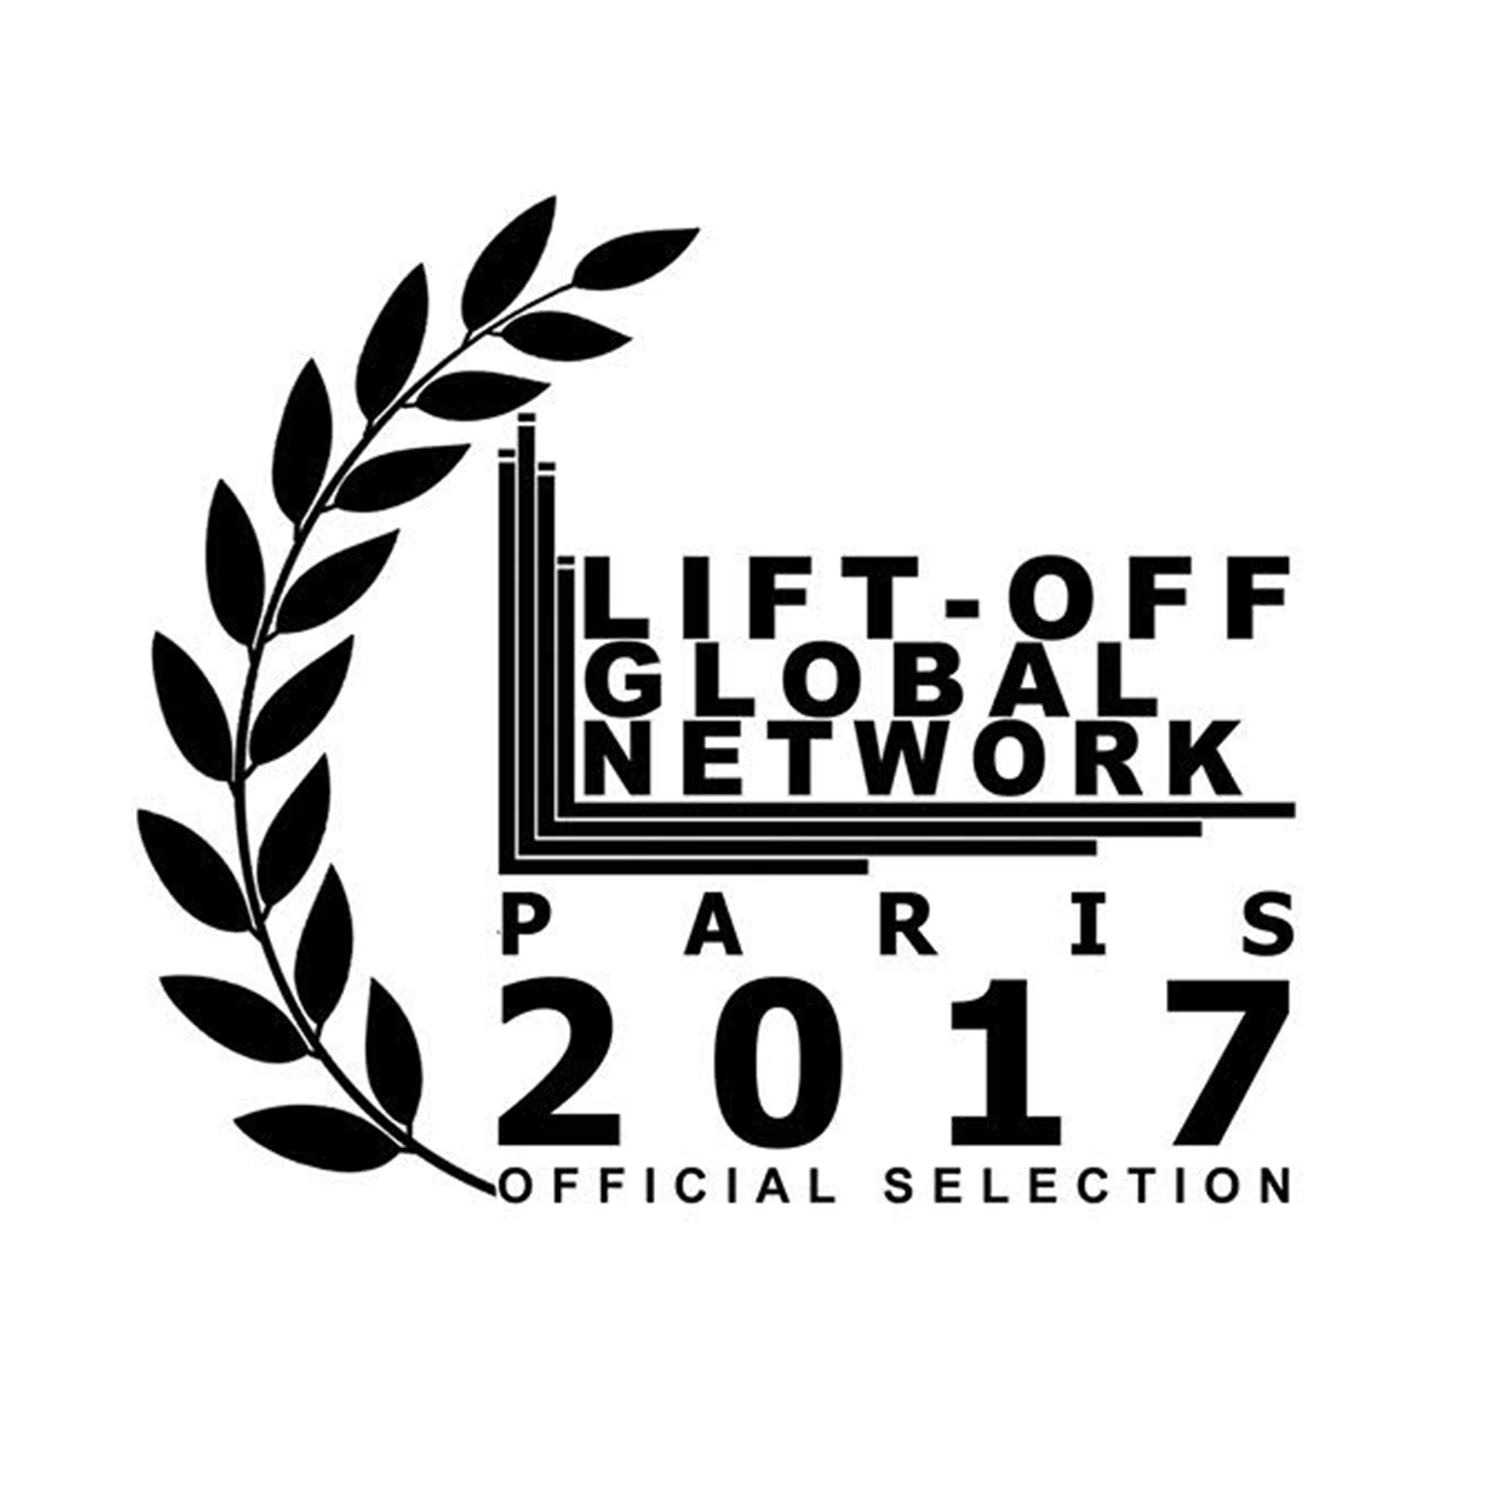 Lift-Off Global Network Paris 2017 Official Selection.jpg